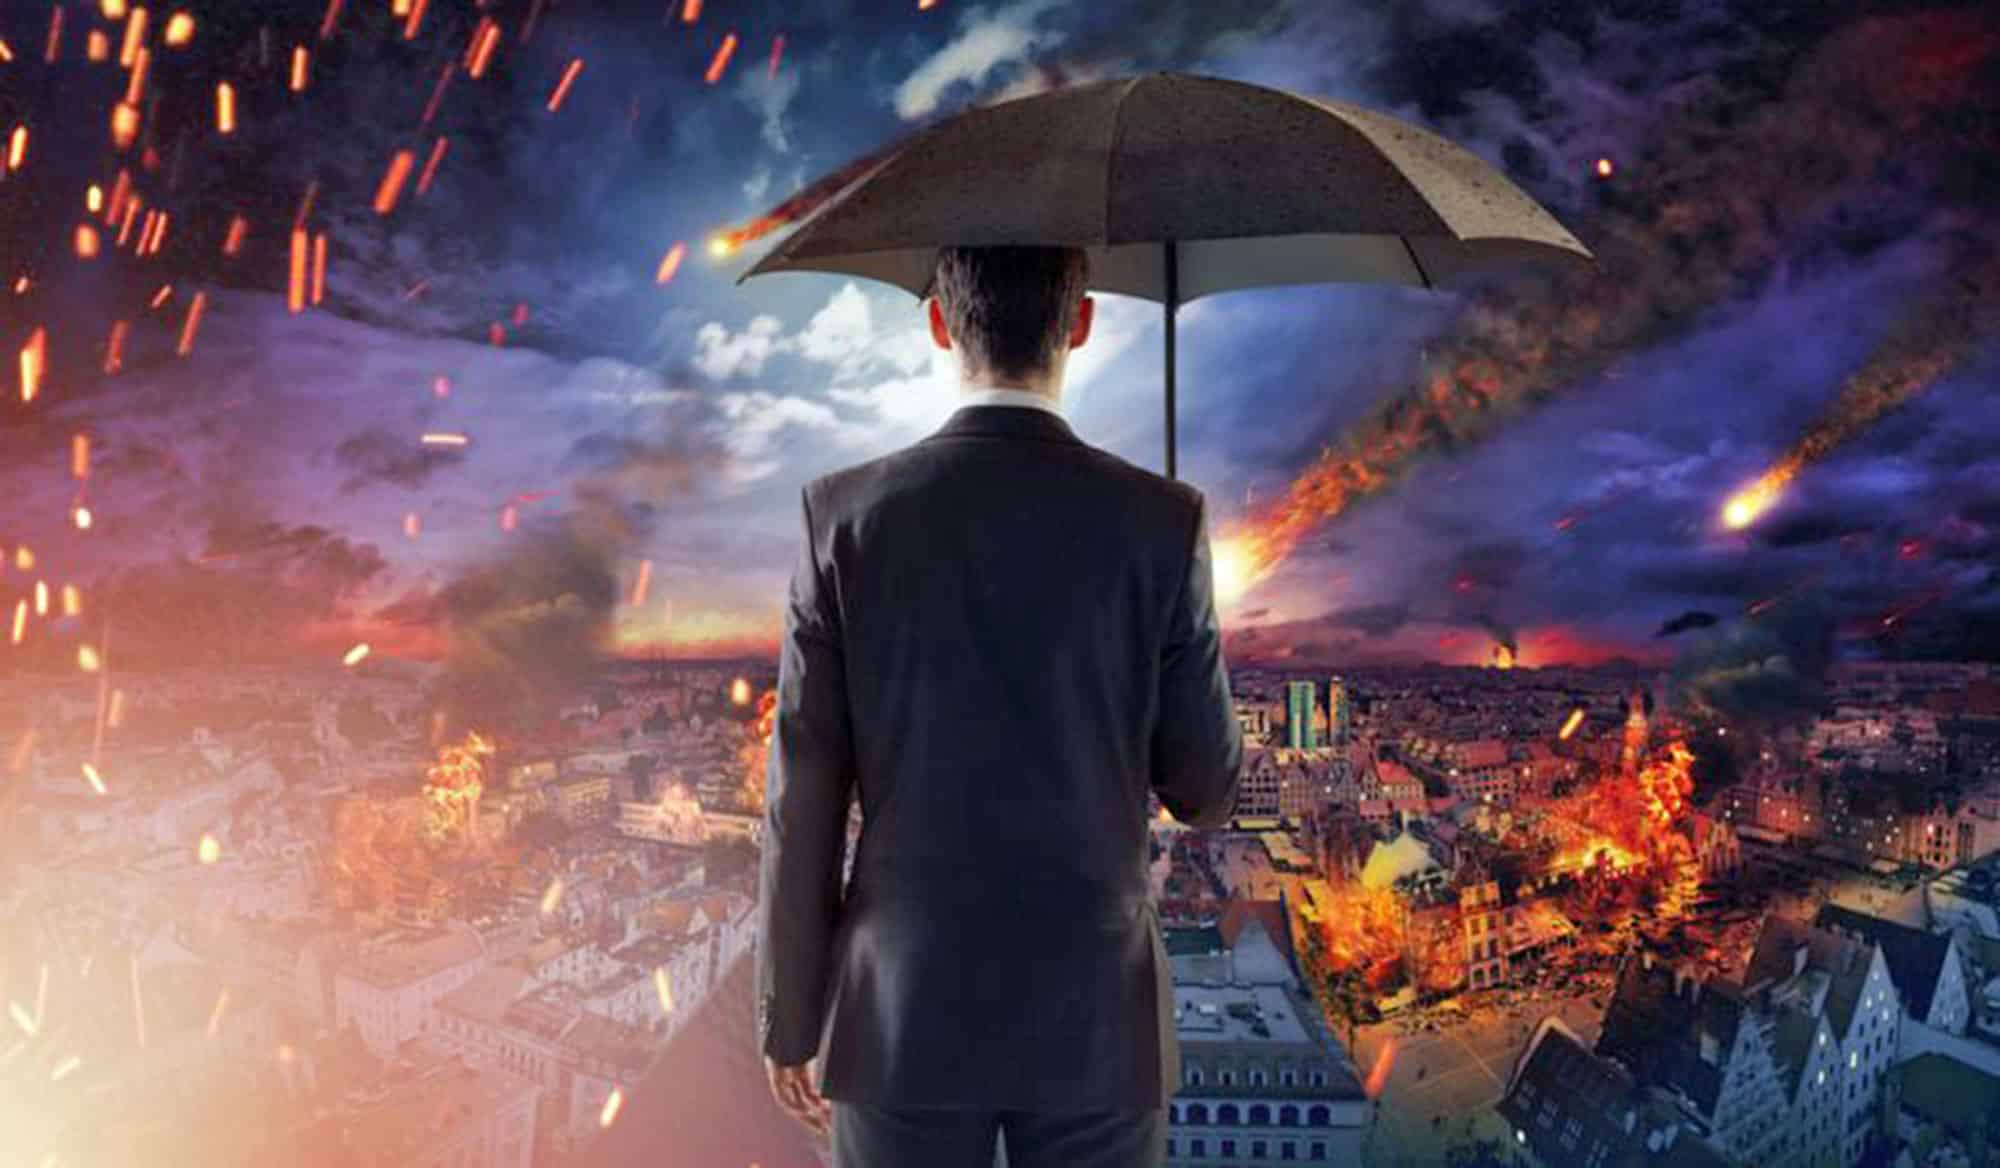 A man in a suit holding an umbrella and watching meteorites crash into a city